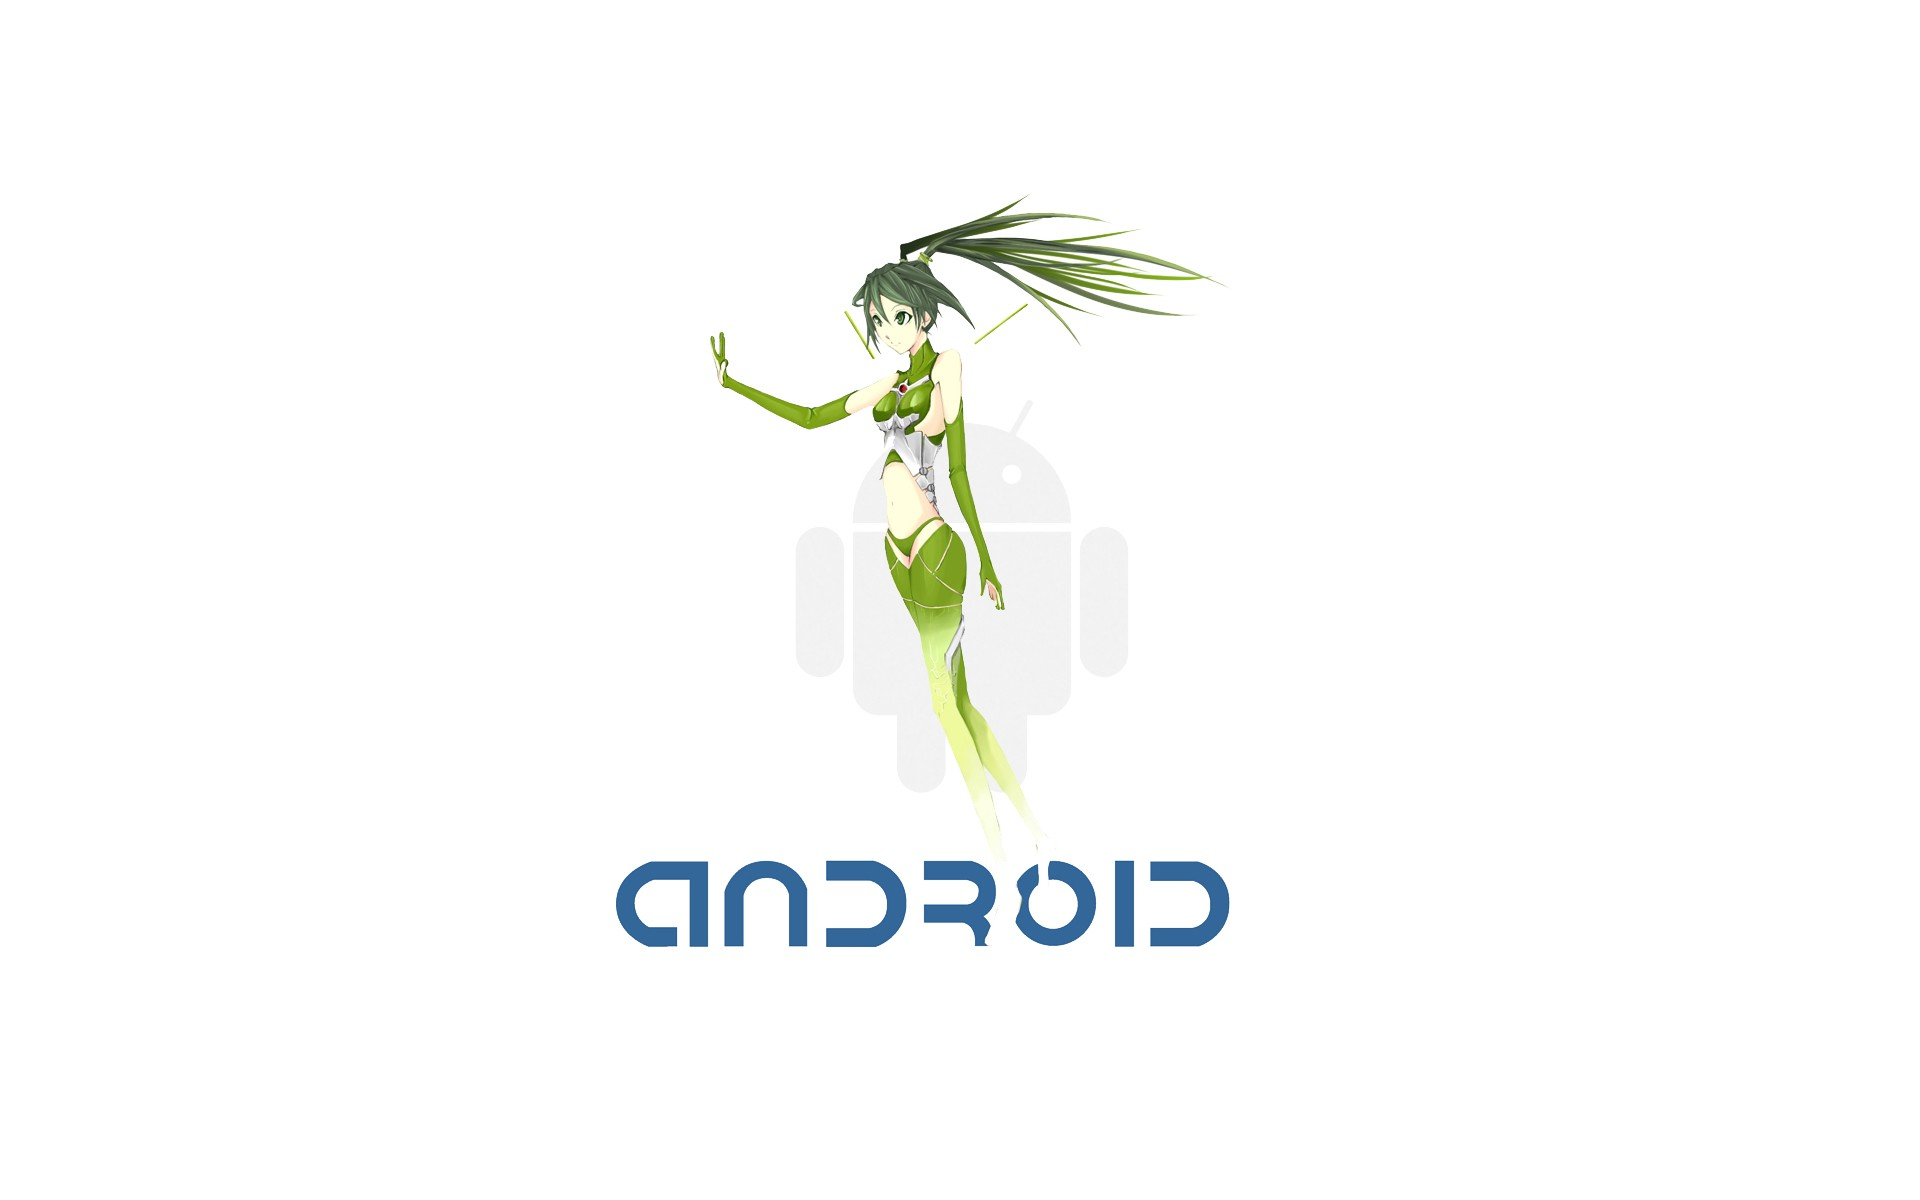 android white anime text computer phone wallpaper 1920x1200 74585 wallpaperup